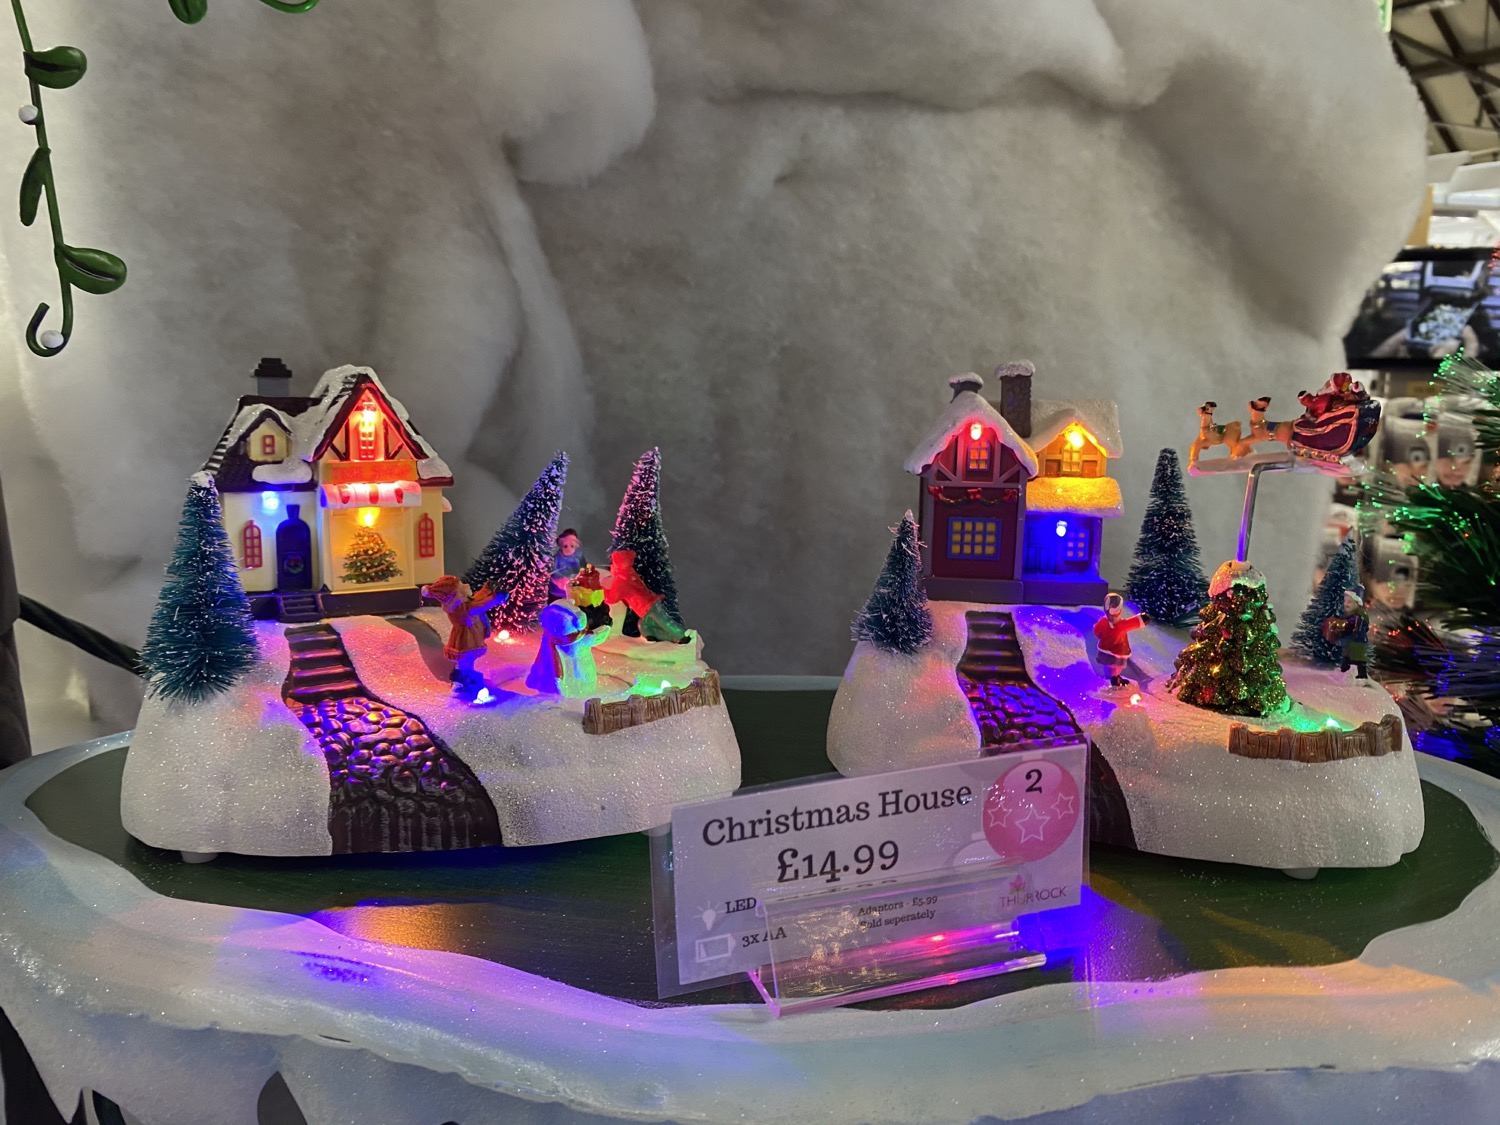 fibre optic, villages, reindeer, trees, santa, penguin, lights